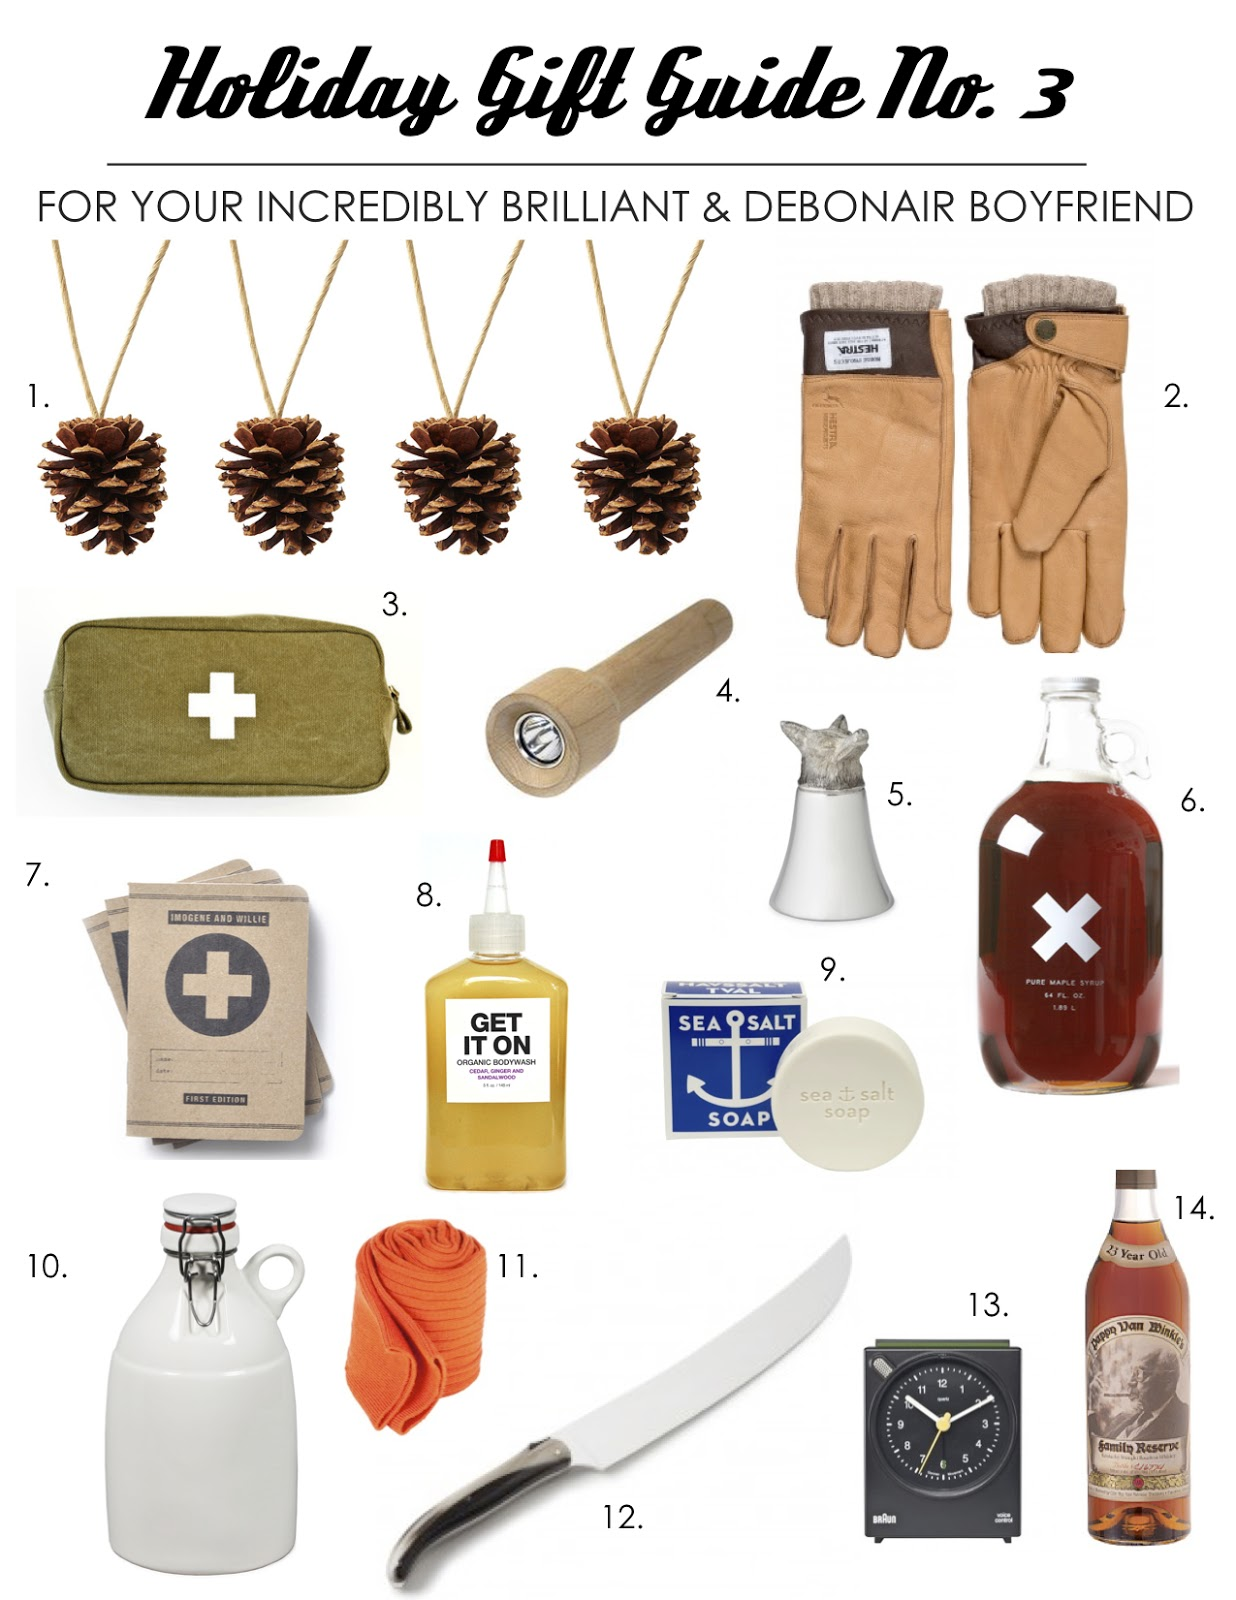 Gift Guide 2012: The Best Gifts for Your Boyfriend!